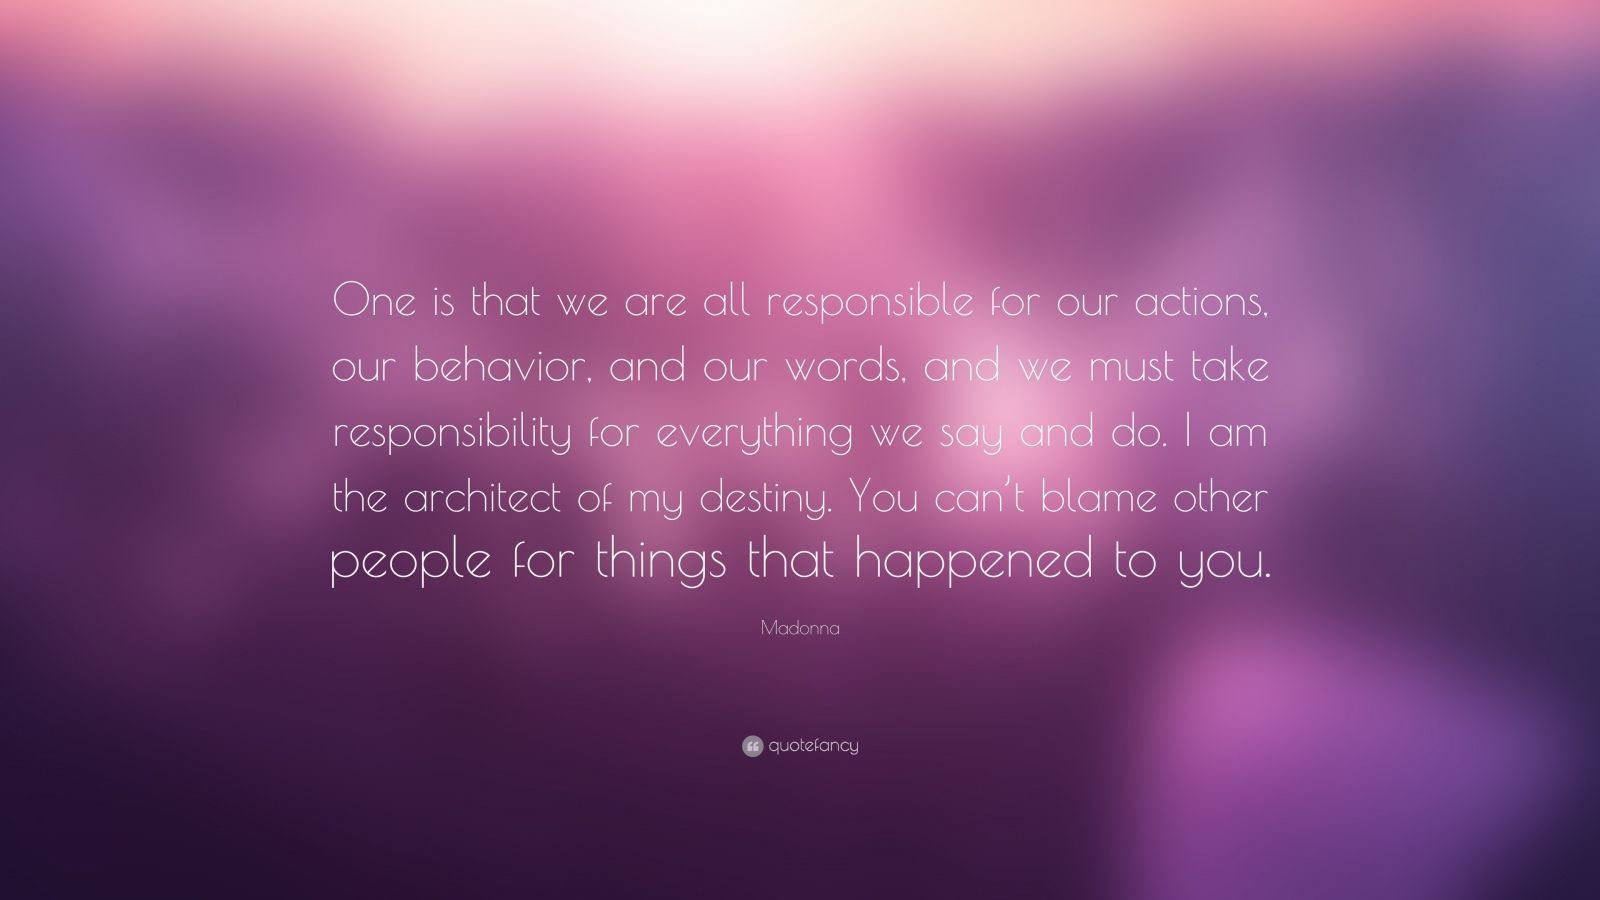 taking responsibility for ones actions